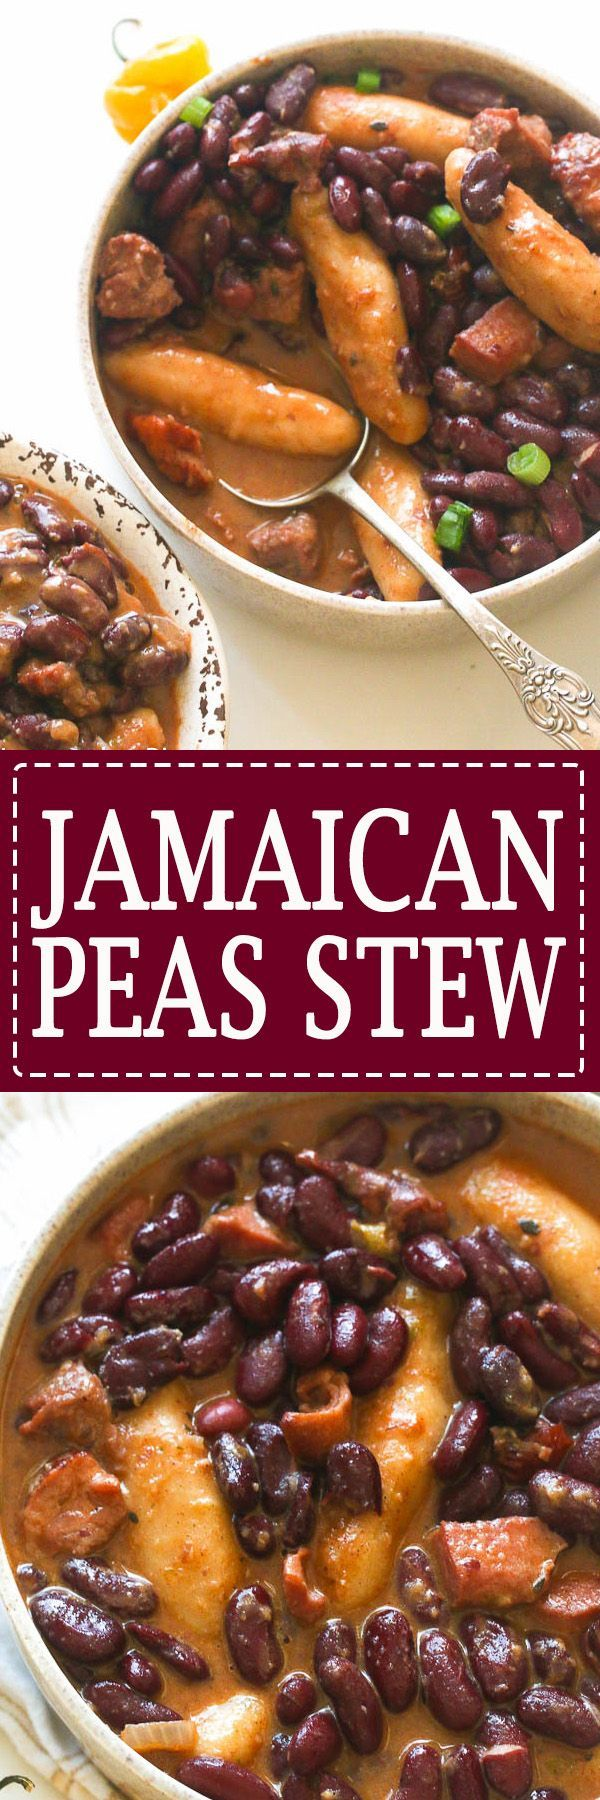 jamaican red stewed peas  recipe  jamaican recipes